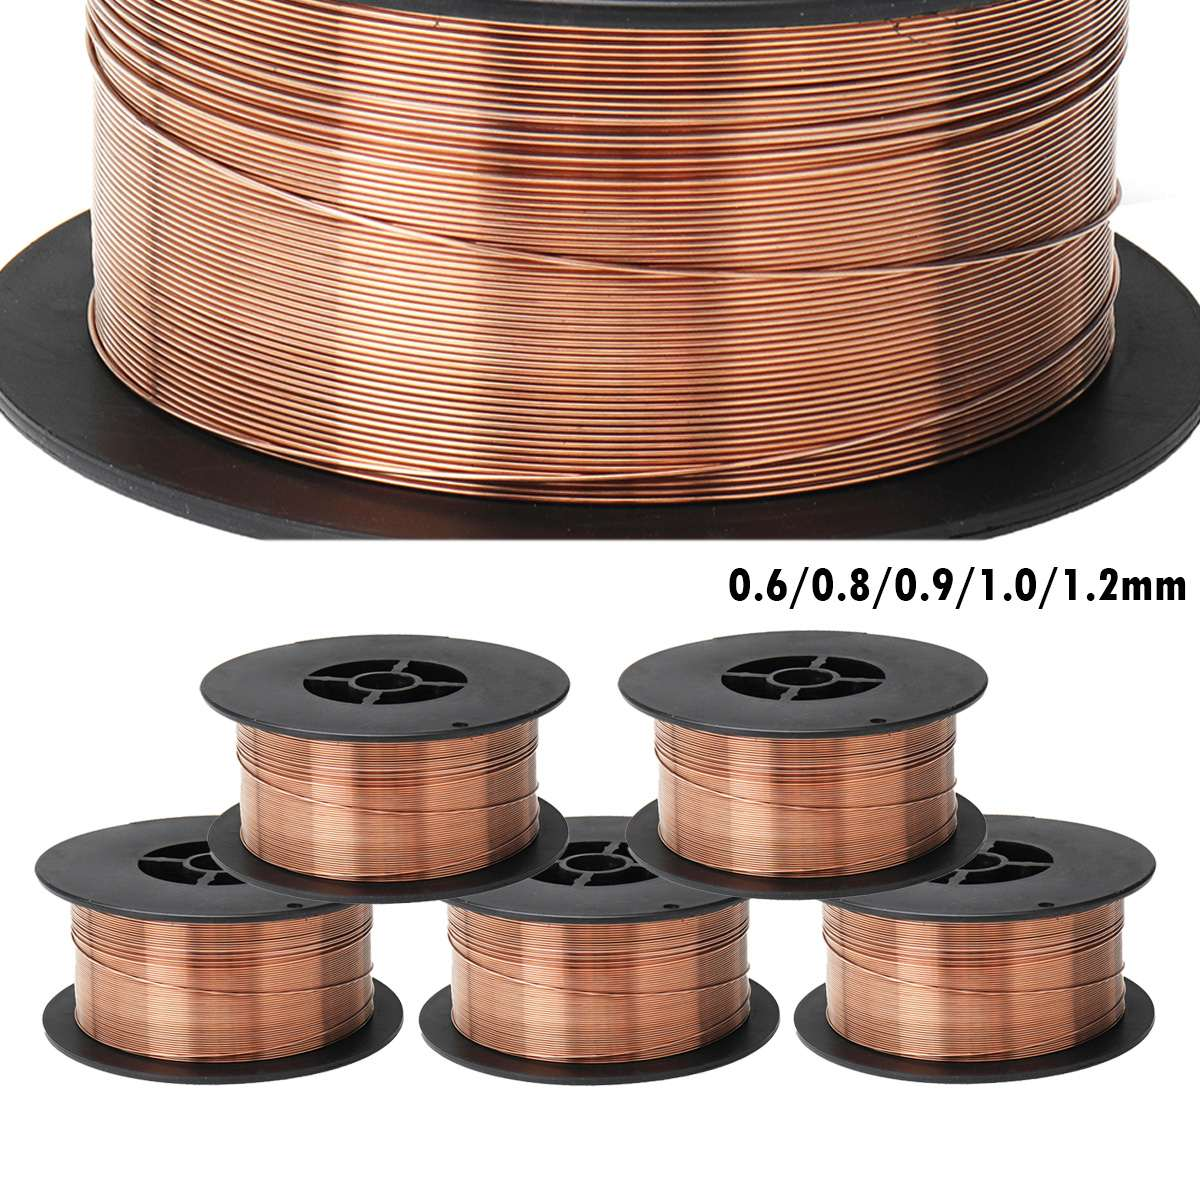 0.6/0.8/0.9/1.0/1.2mm 1KG Carbon Steel Gas Shielded Welding Wire Mild Steel ER70S-6 / ER50-6 MIG Welding Wires